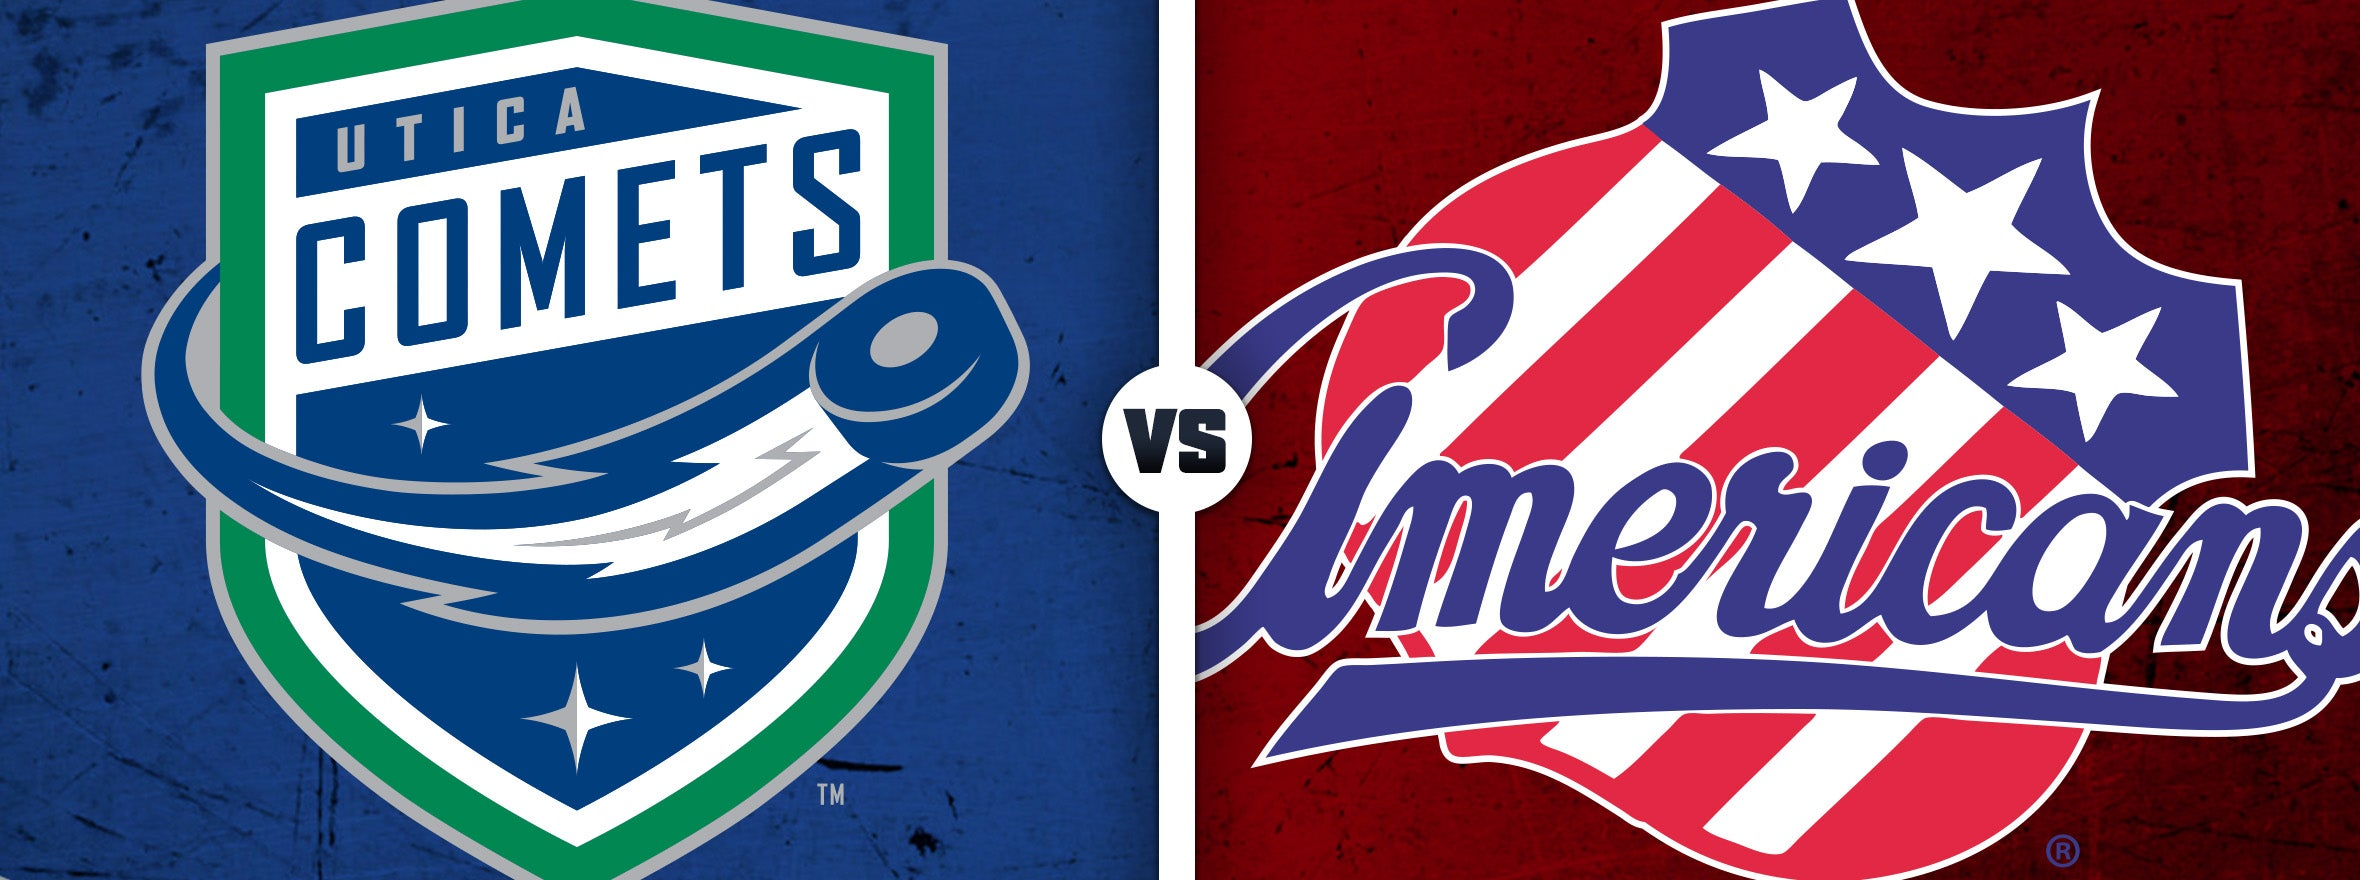 COMETS RETURN TO ROCHESTER FOR MIDWEEK MATCHUP